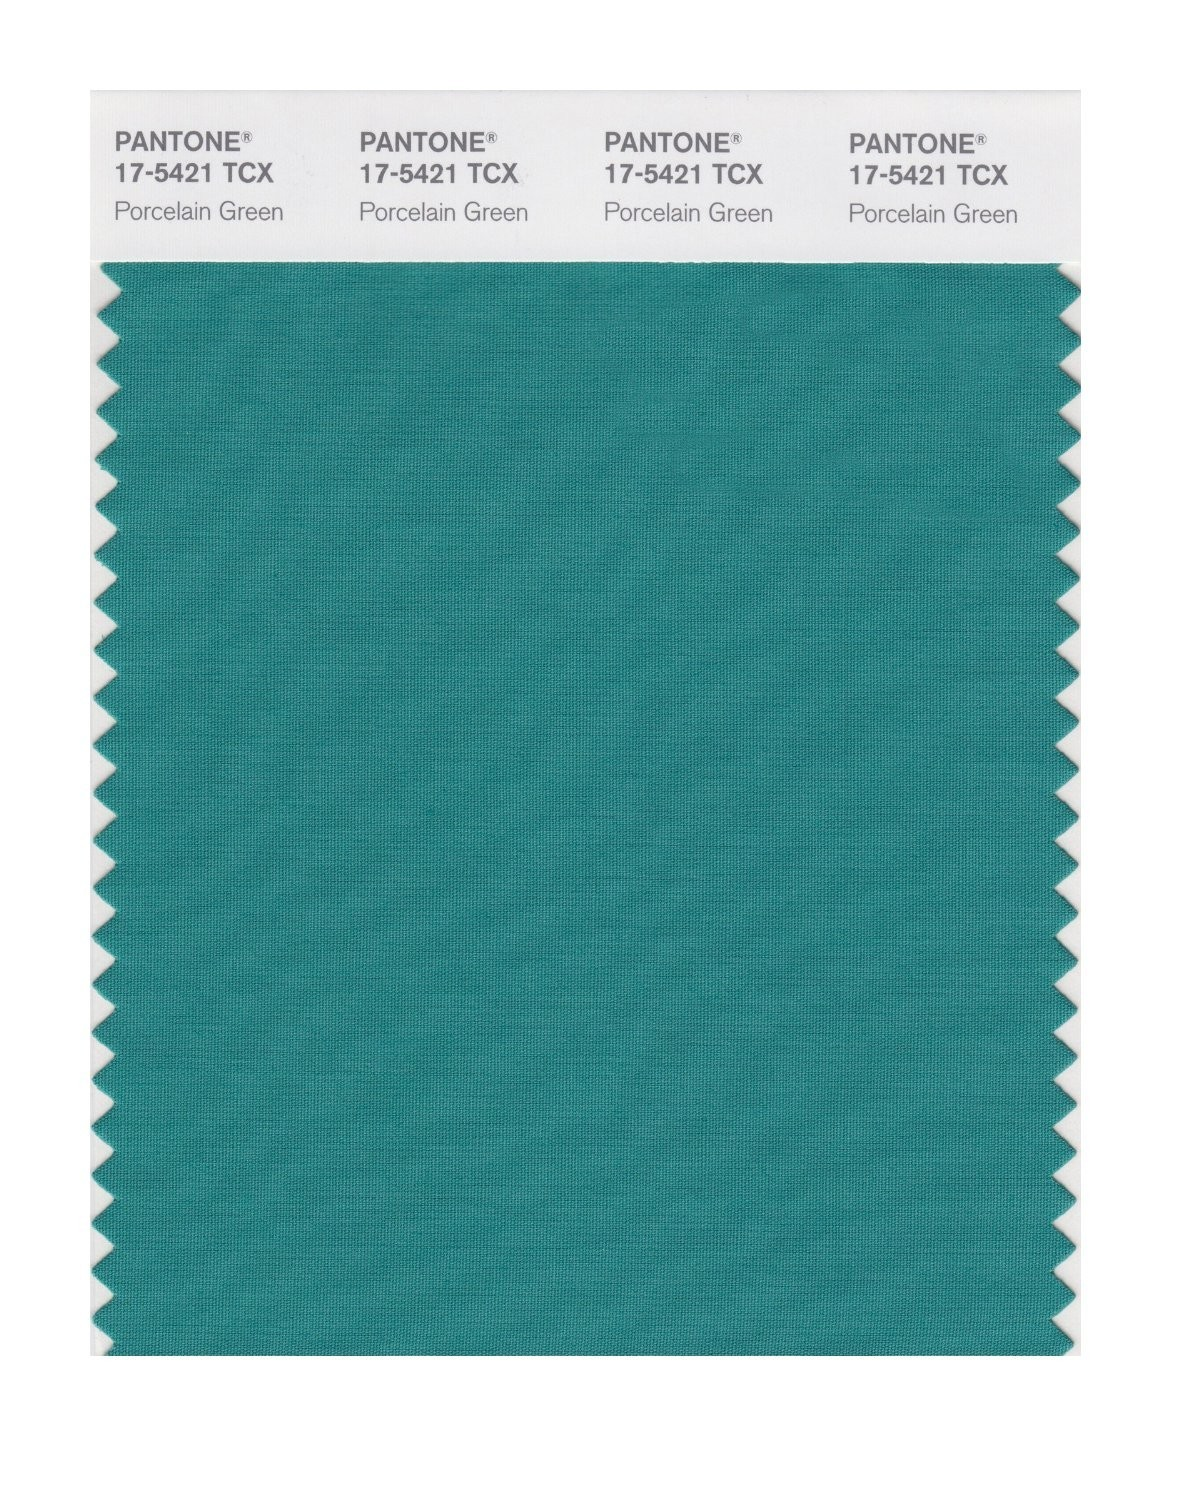 Pantone 17-5421 TCX Swatch Card Porcelain Green